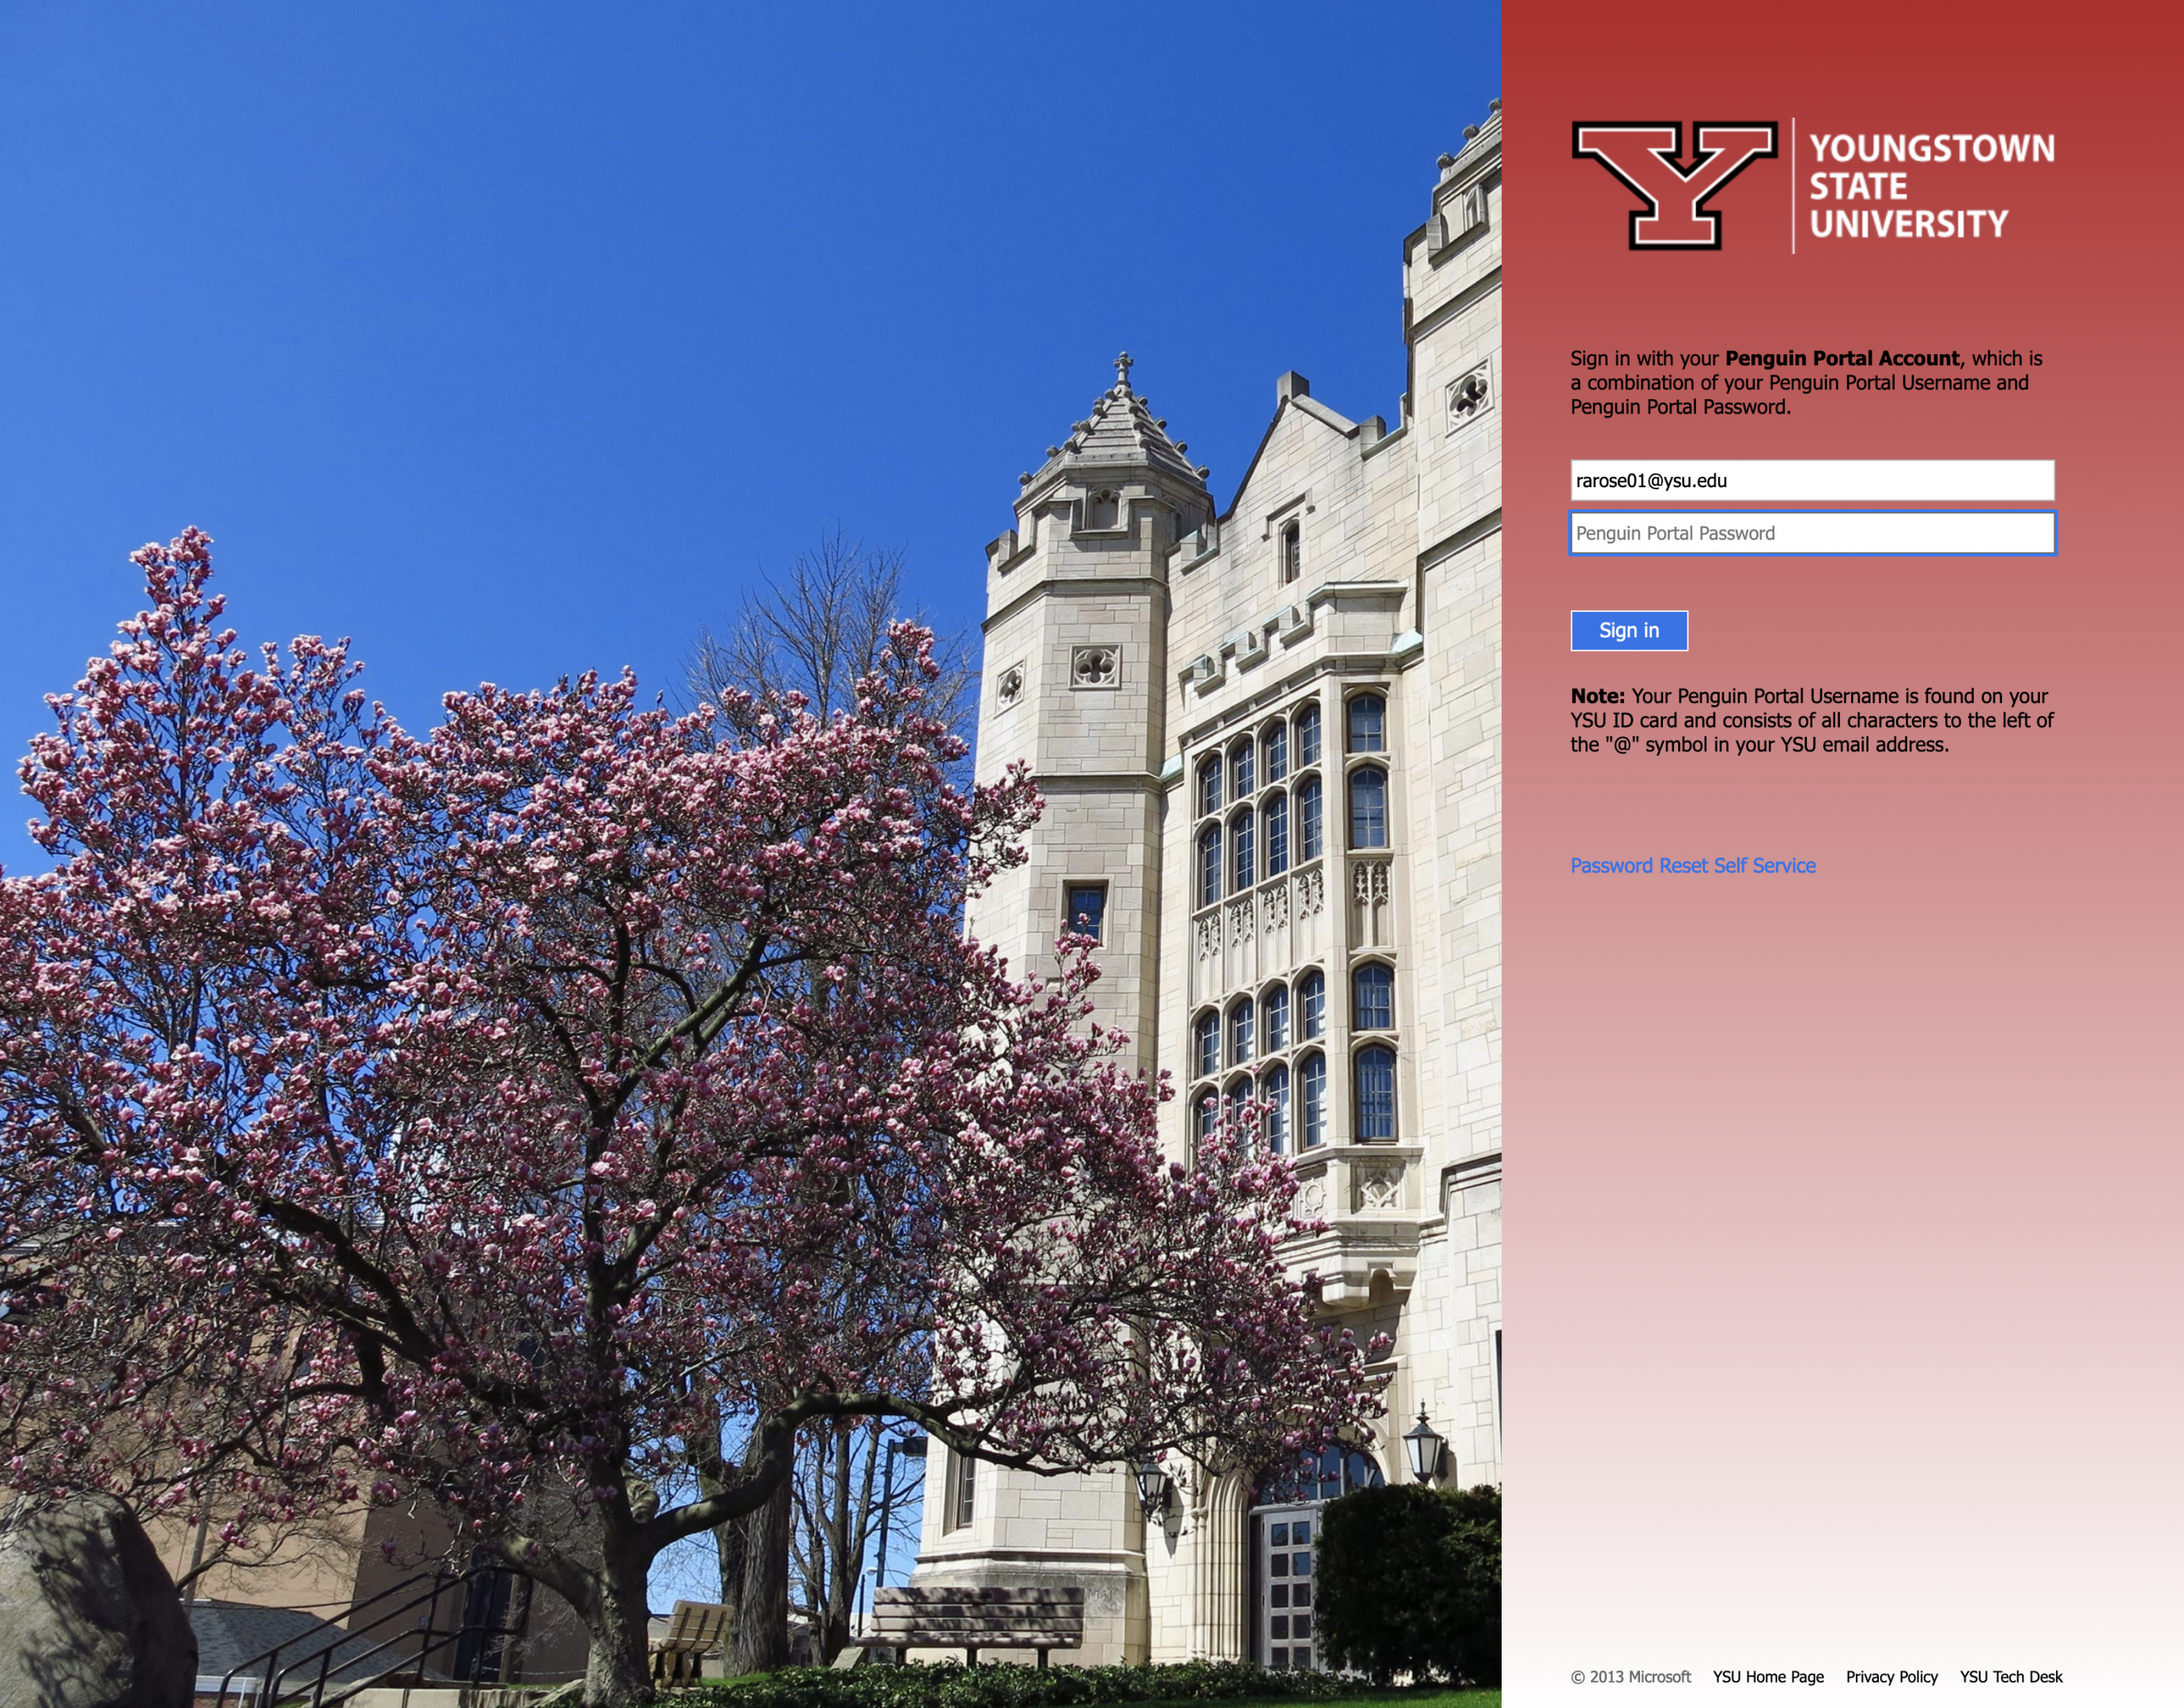 You will be re-directed to sign in with your YSU username and password. Sign in.